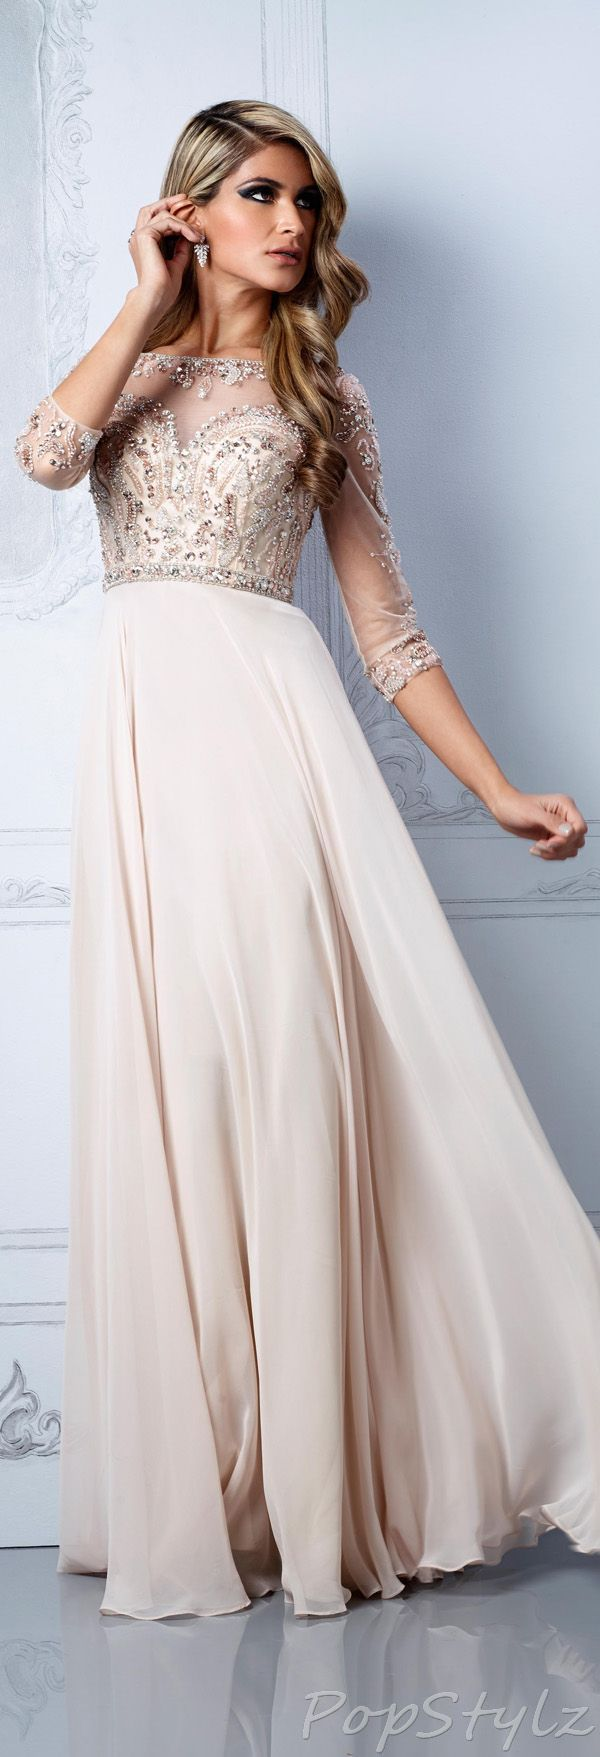 beautiful romantic modest dress for a simple elegant wedding | sheer embellished three-quarter sleeves | fitted bodice with beaded, sequin and embellishment detail | skinny rhinestone studded waistband | simple full flowing chiffon or silk skirt